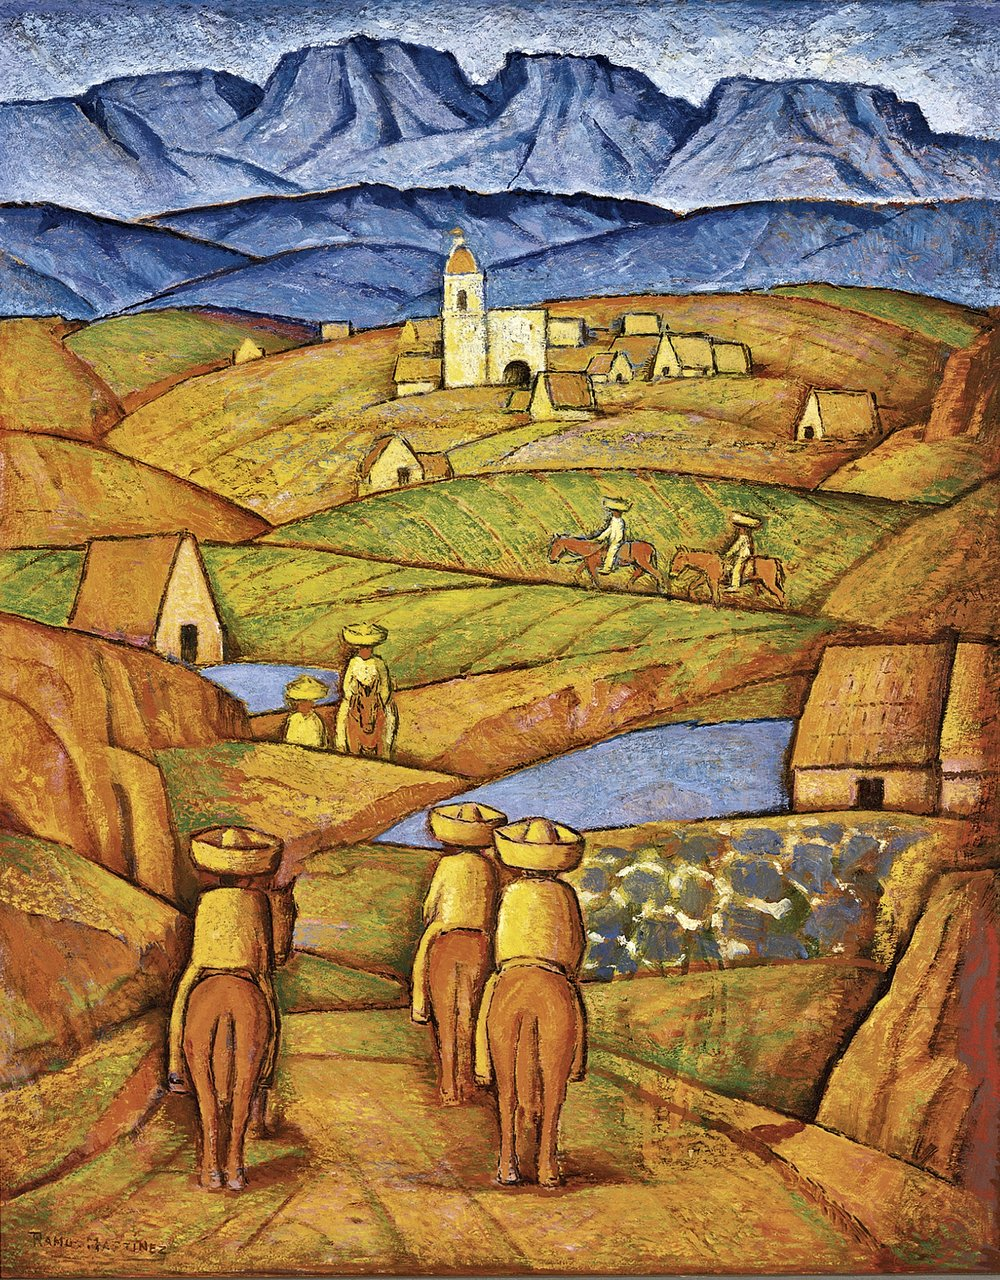 Los Charros del Pueblo / The Charros in the Village  ca. 1941 oil on binder board / óleo sobre tabla comprimida 30 x 24 inches; 76.2 x 61 centímetros San Diego Museum of Art